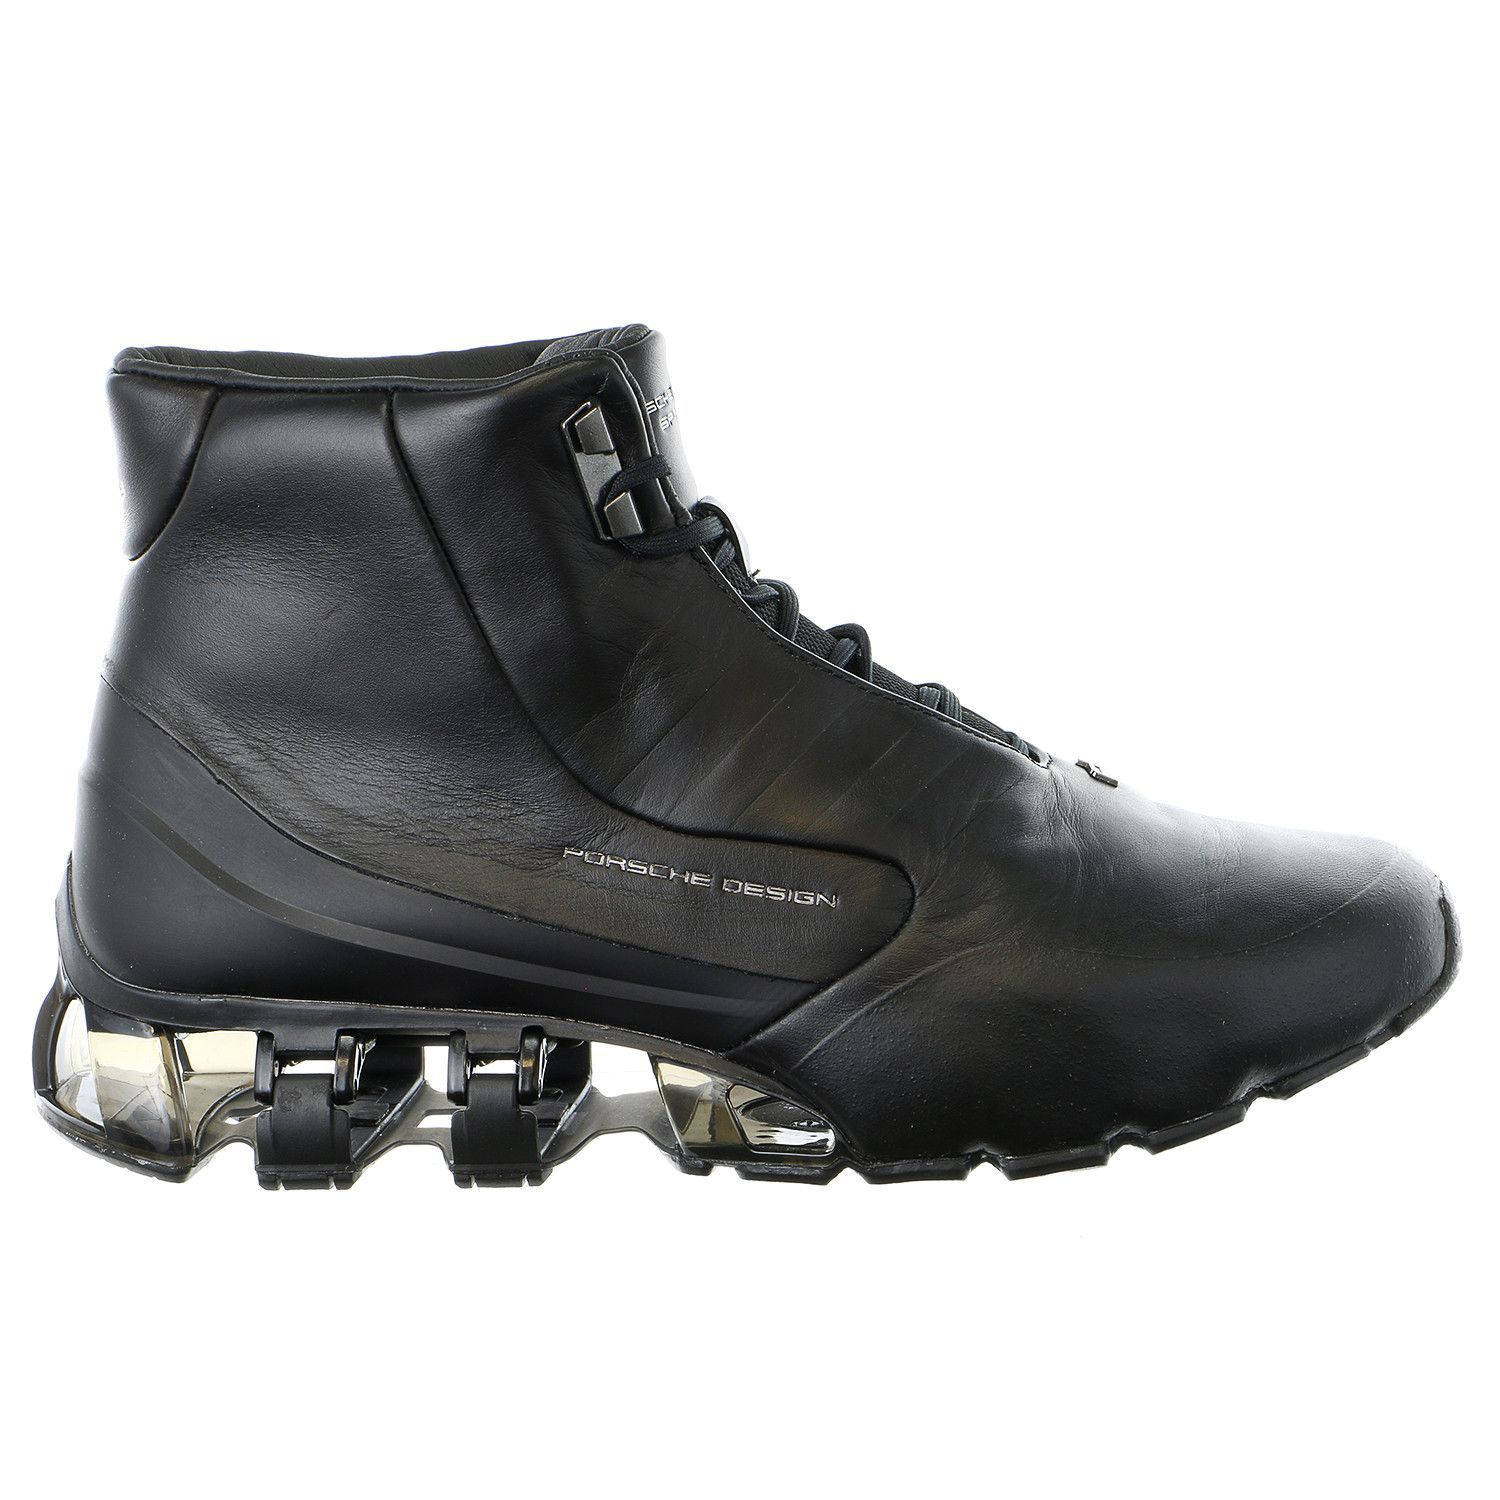 size 40 c38dc 069a7 The innovative Porsche Design Sport by adidas BOUNCE:S3 Mid ...